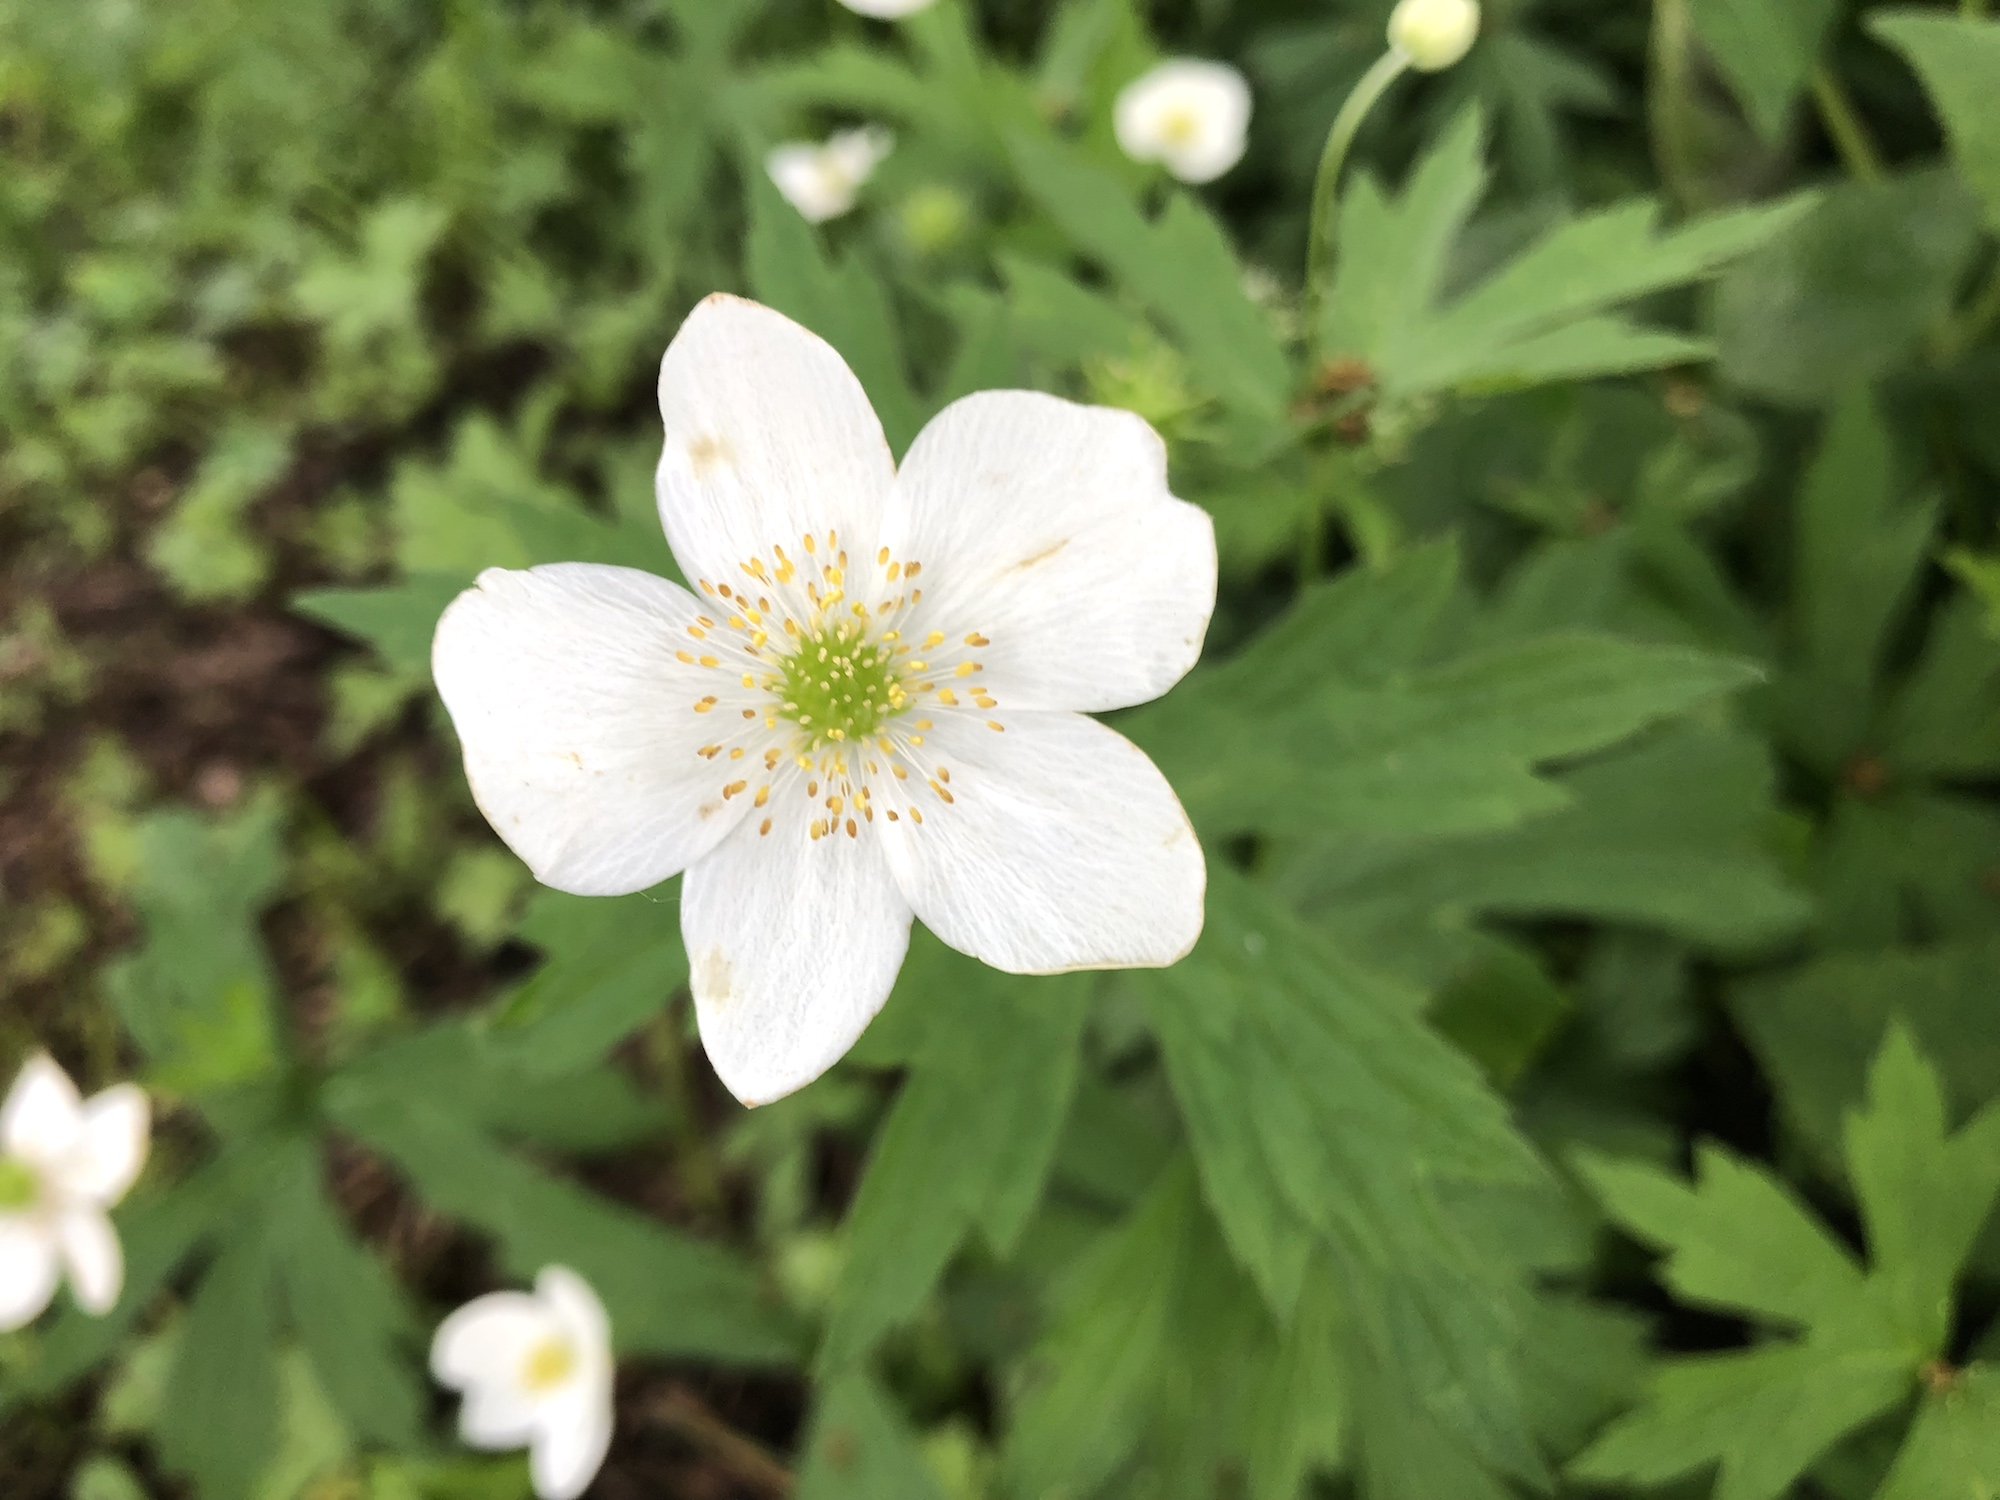 Canada anemone in Thoreau Rain Garden in Madison, Wisconsin on June 16, 2019.